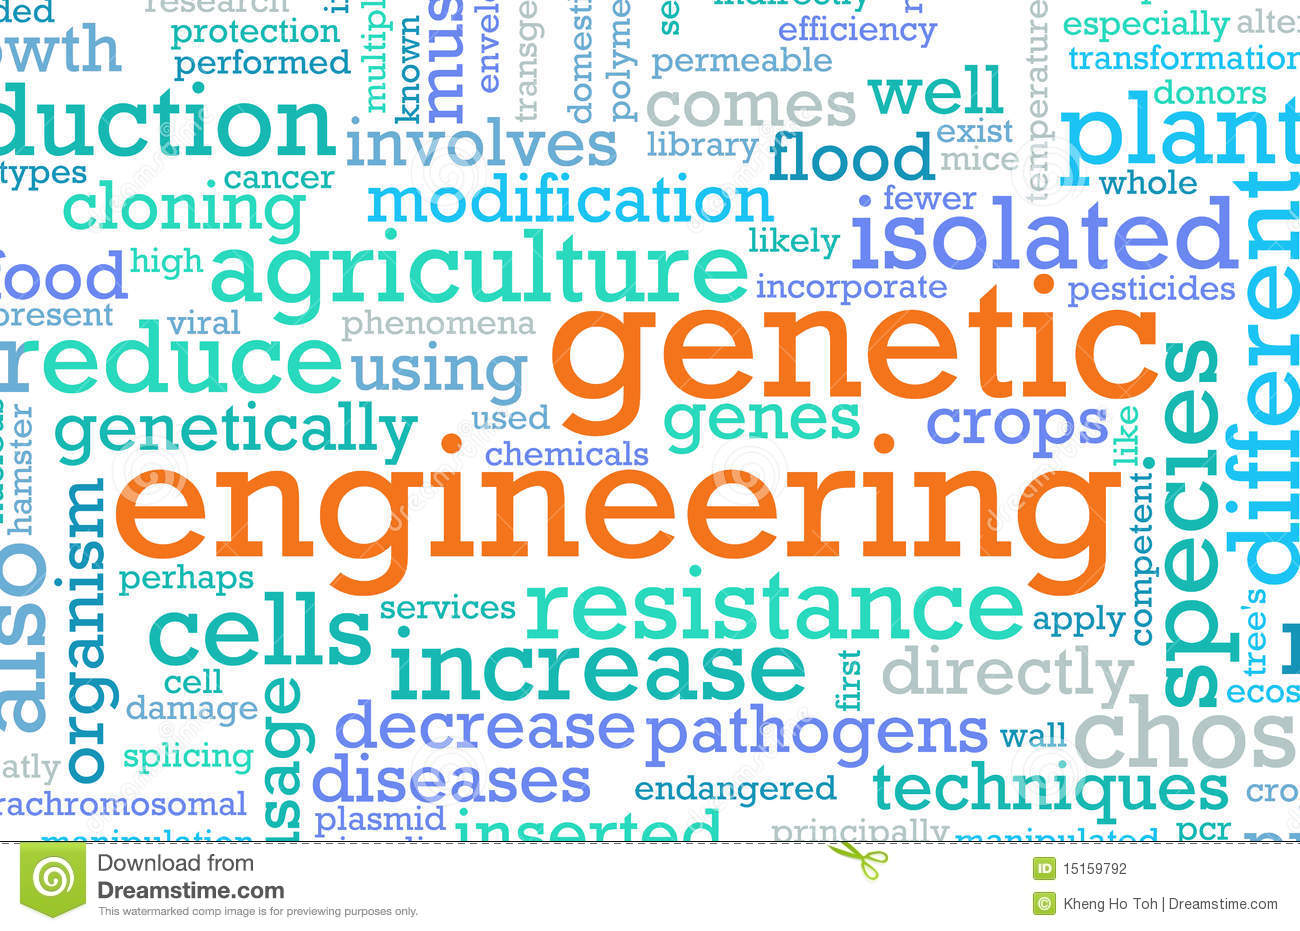 the areas of concern in genetic engineering Genetic engineering of animals: ethical issues, including welfare concerns   specific areas for which [genetically engineered animal models] may be useful  are.